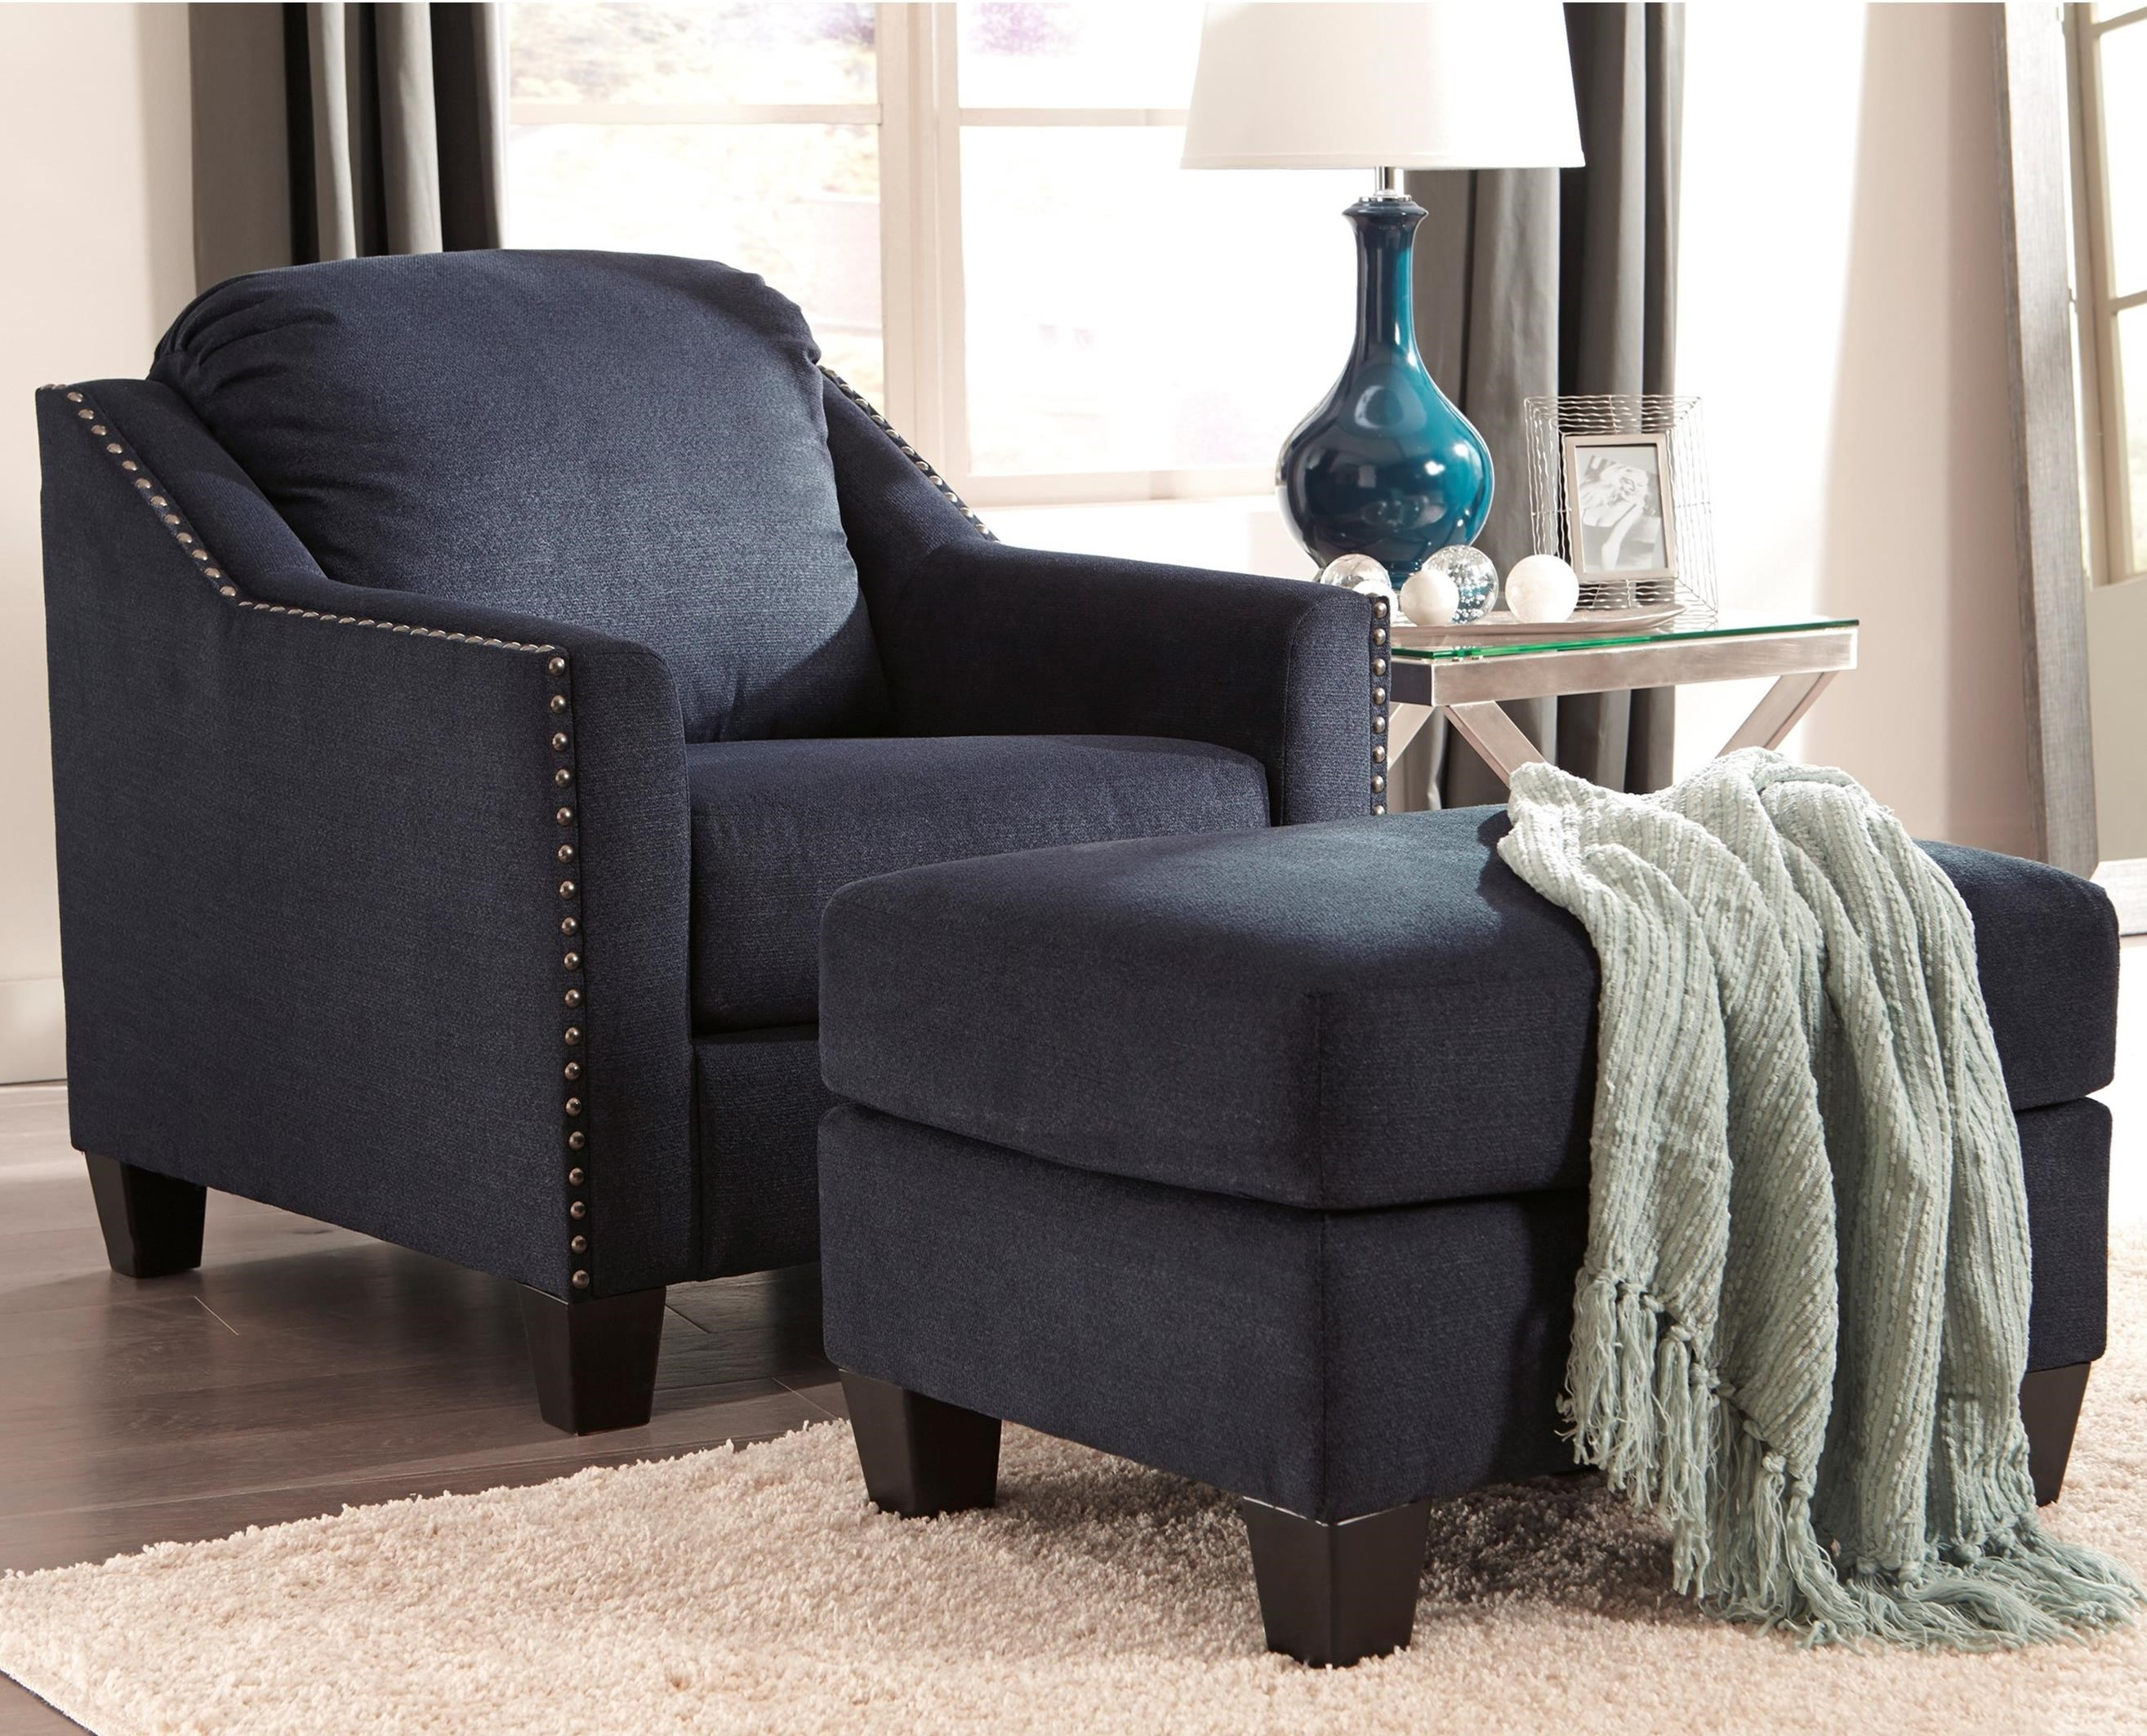 Creeal Heights Chair & Ottoman Set by Benchcraft at Walker's Furniture